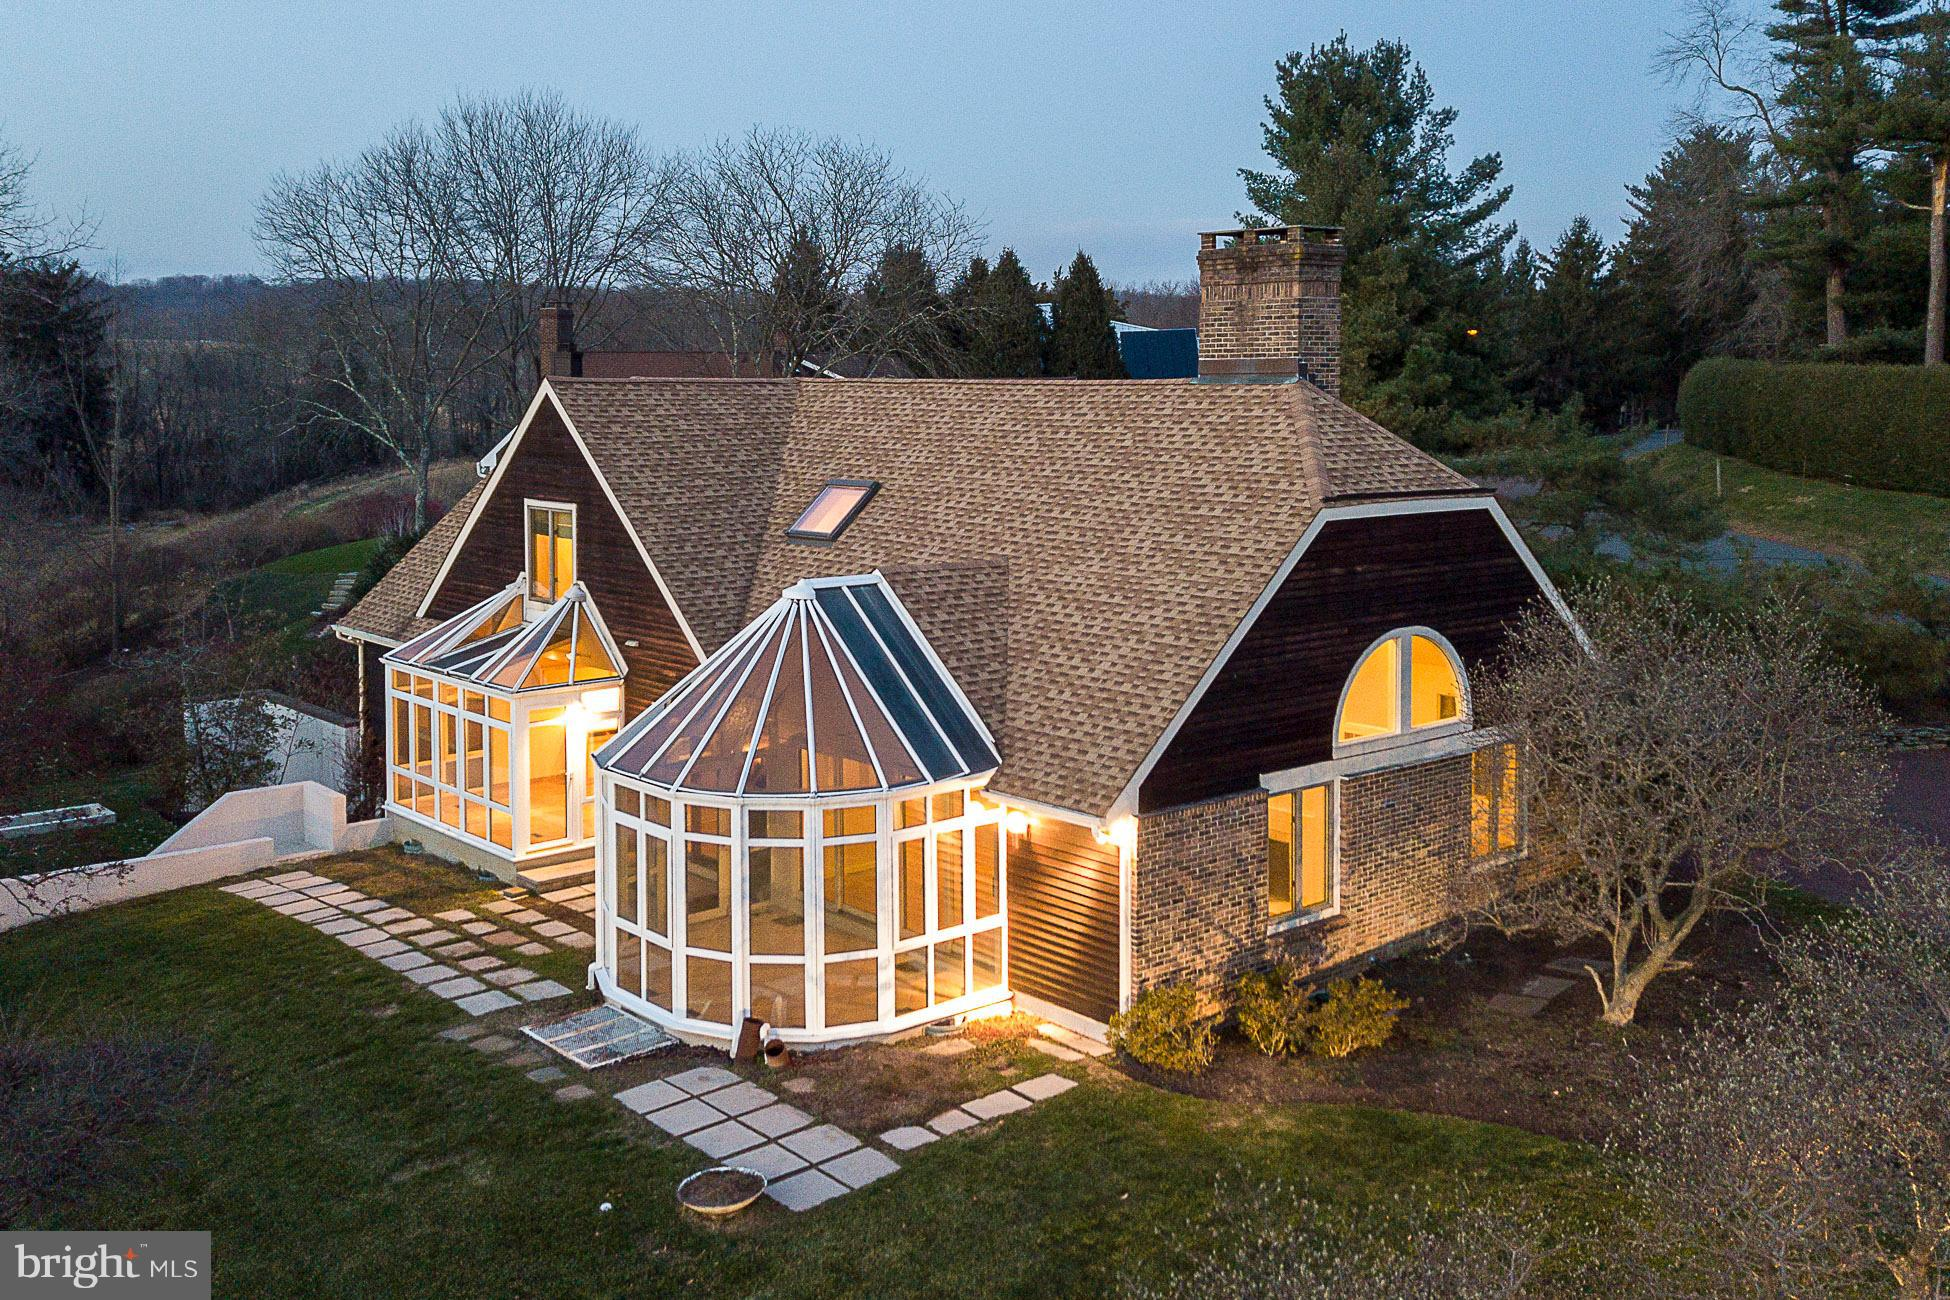 A rare gem in a coveted Western Section setting, this exciting Hillier home impresses with the clarity of natural light, the seasonal color of a romantic sunken garden and backing meadow, and sidewalks all the way to downtown. Vaulted ceilings and hardwoods energize a flexible layout that can live large or small, depending on your needs. A wonderful flow connects a soaring library and living room, a dining room fit for a feast, and a peaked, glass-wrapped solarium that provides sunny pleasure year-round. The eat-in kitchen's breakfast room delights with long views of the garden and a Mountain Lakes meadow.  A 1st floor master features an organized walk-in closet and private en suite bath; 2 more sun-filled bedrooms upstairs share a skylit bath and a fantastic loft space. The expansive, walkout basement has potential for finishing. Set in The Glen, where homes rarely come to market, this well-priced home offers manageable taxes and a stroll-away location from Nassau Street, Mountain Lakes Preserve, and area recreation trails.